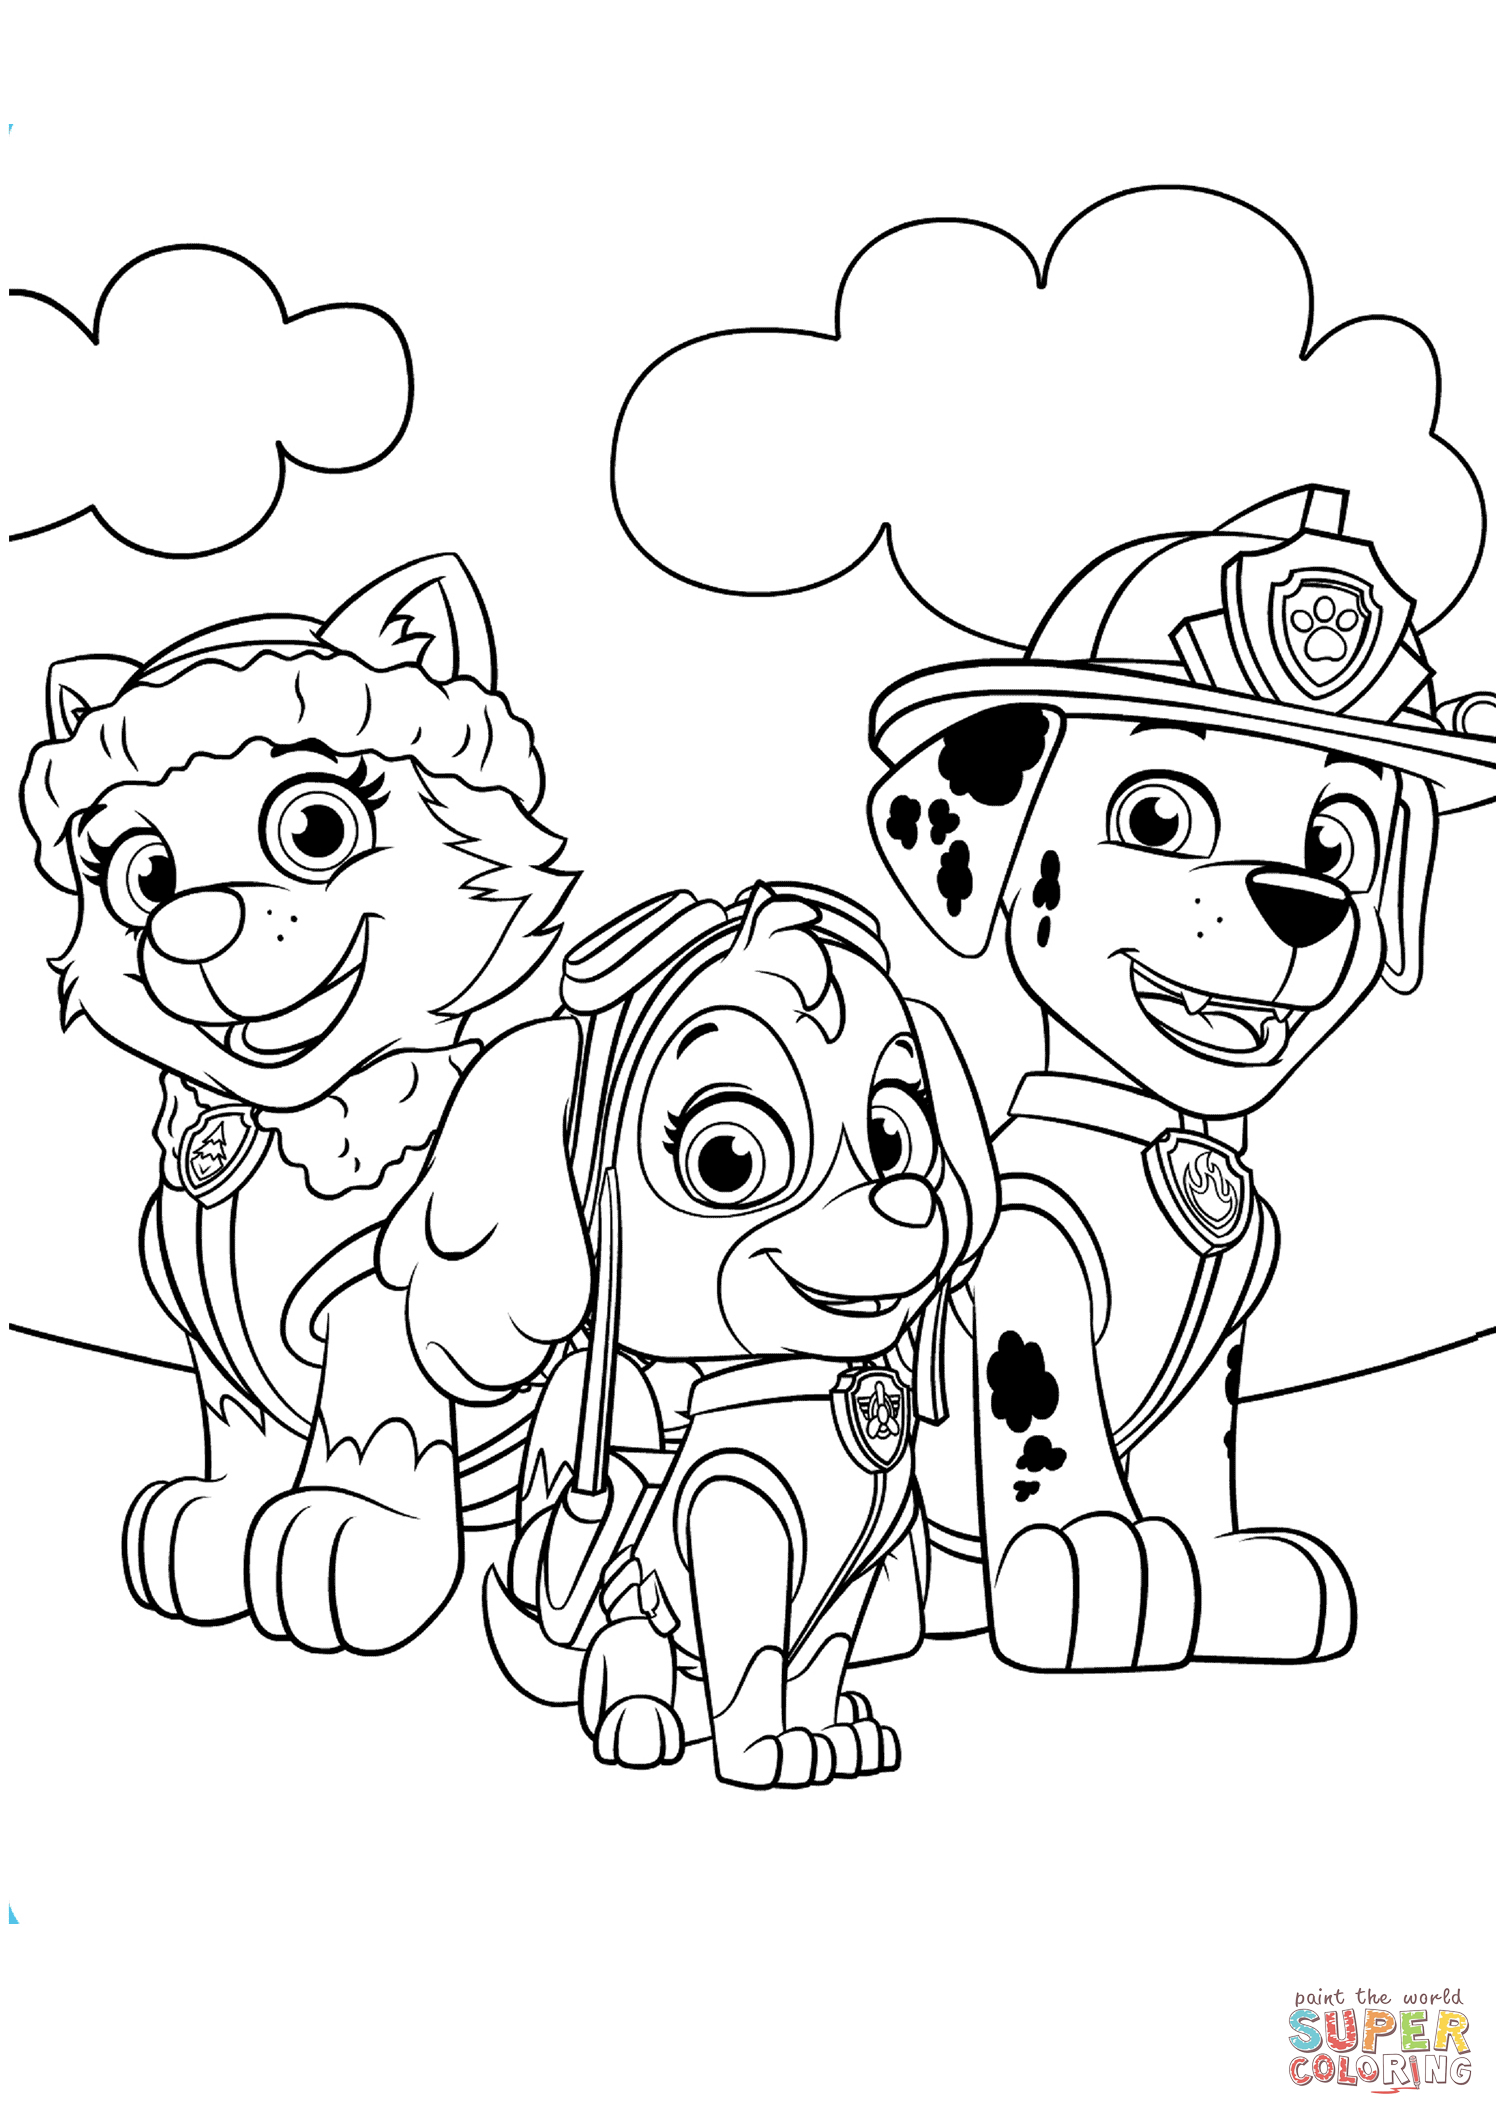 Paw Patrol Marshall Drawing At Getdrawings Com Free For Personal